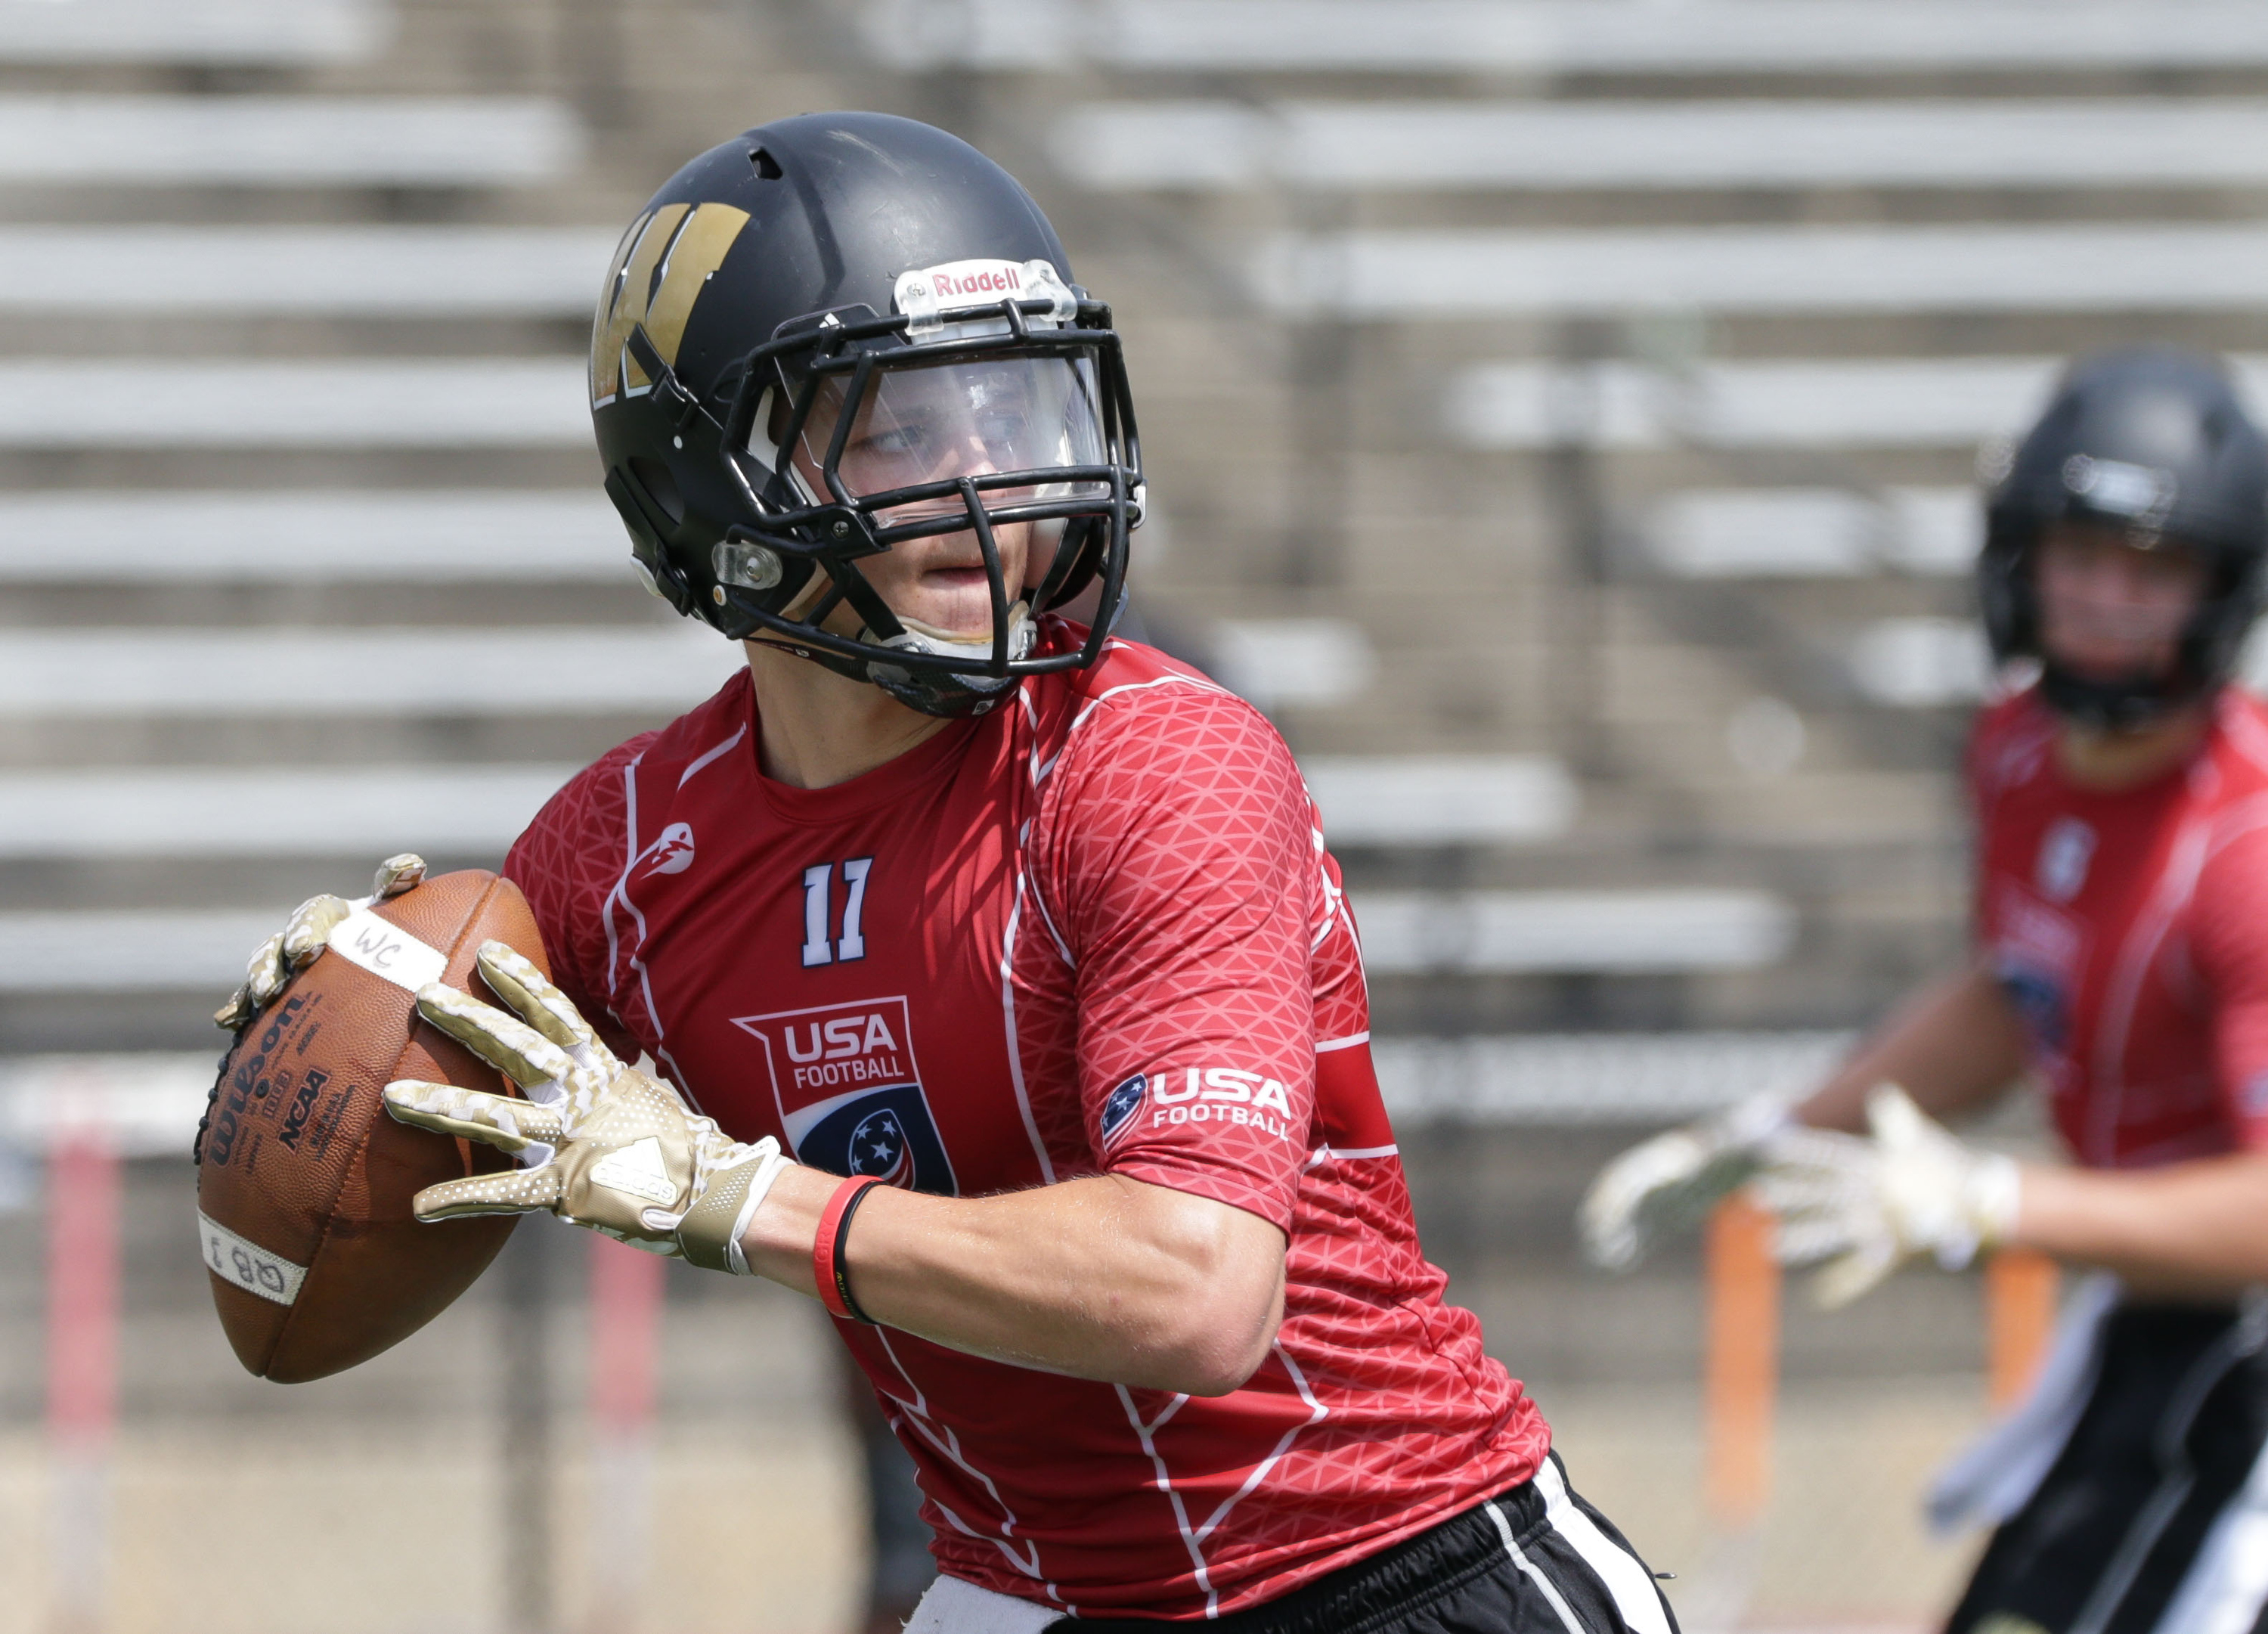 Jul 16, 2016; Hoover, AL, U.S.A -- Warren Central quarterback Zach Summeier during the USA Football 7on7 National Championship -- Photo by Marvin Gentry USA TODAY Sports Images, Gannett ORG XMIT: US 135185 7on7 7/15/2016 [Via MerlinFTP Drop]